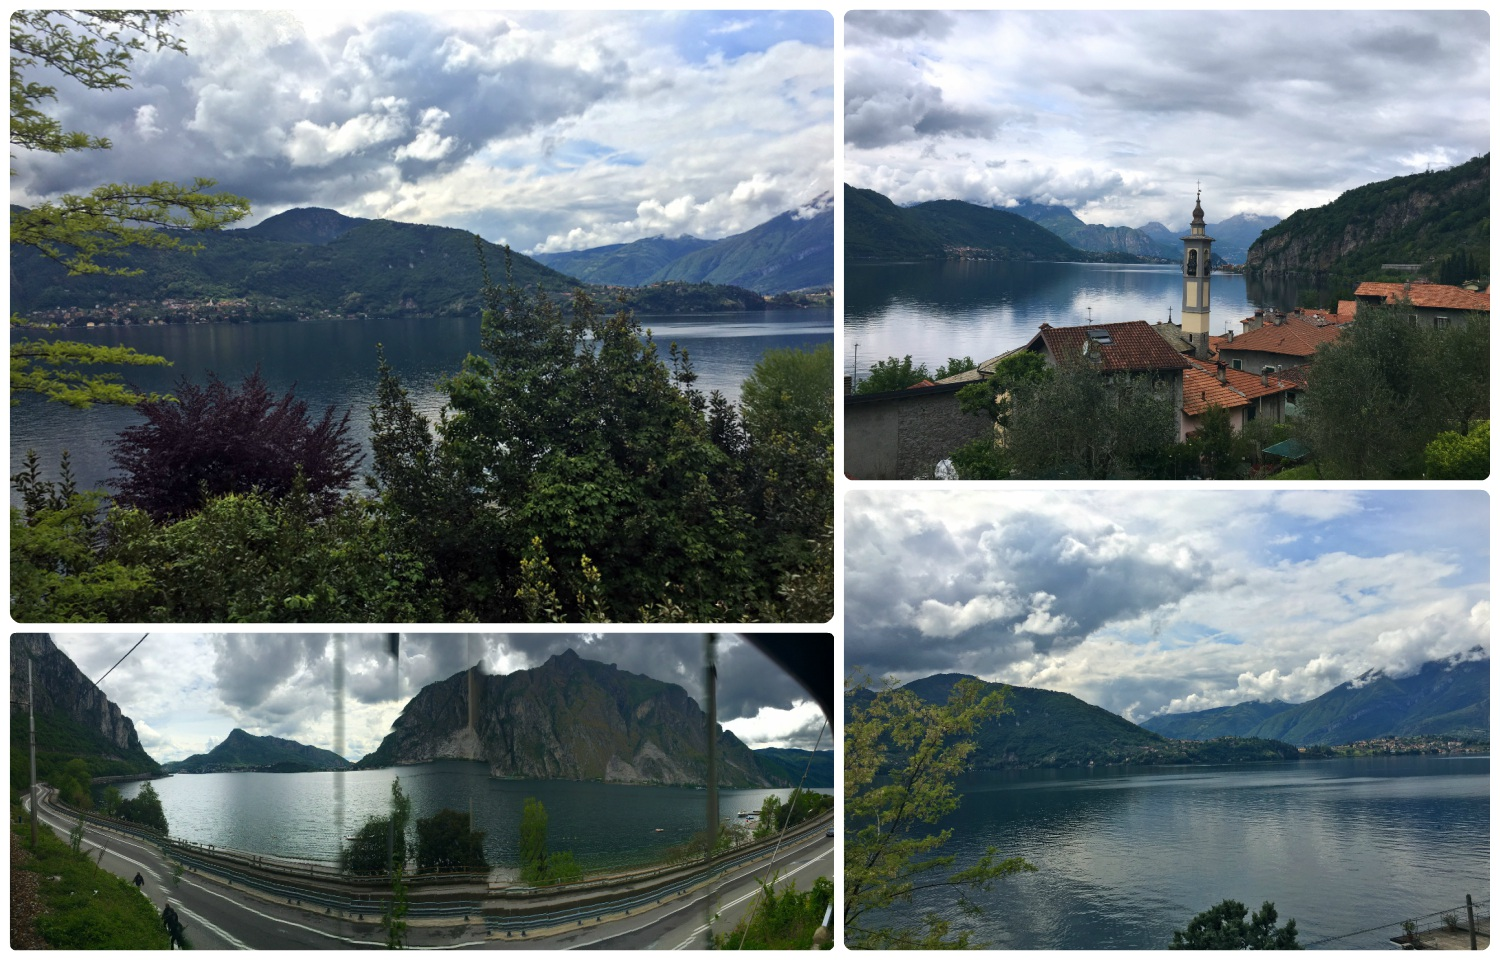 The views continued on our train to Milan. The journey took us along Lake Como and it was beautiful! We tried taking a panorama while on the moving train, but although it doesn't look great, it gives a good idea of the full scenery you'll see (bottom left image).